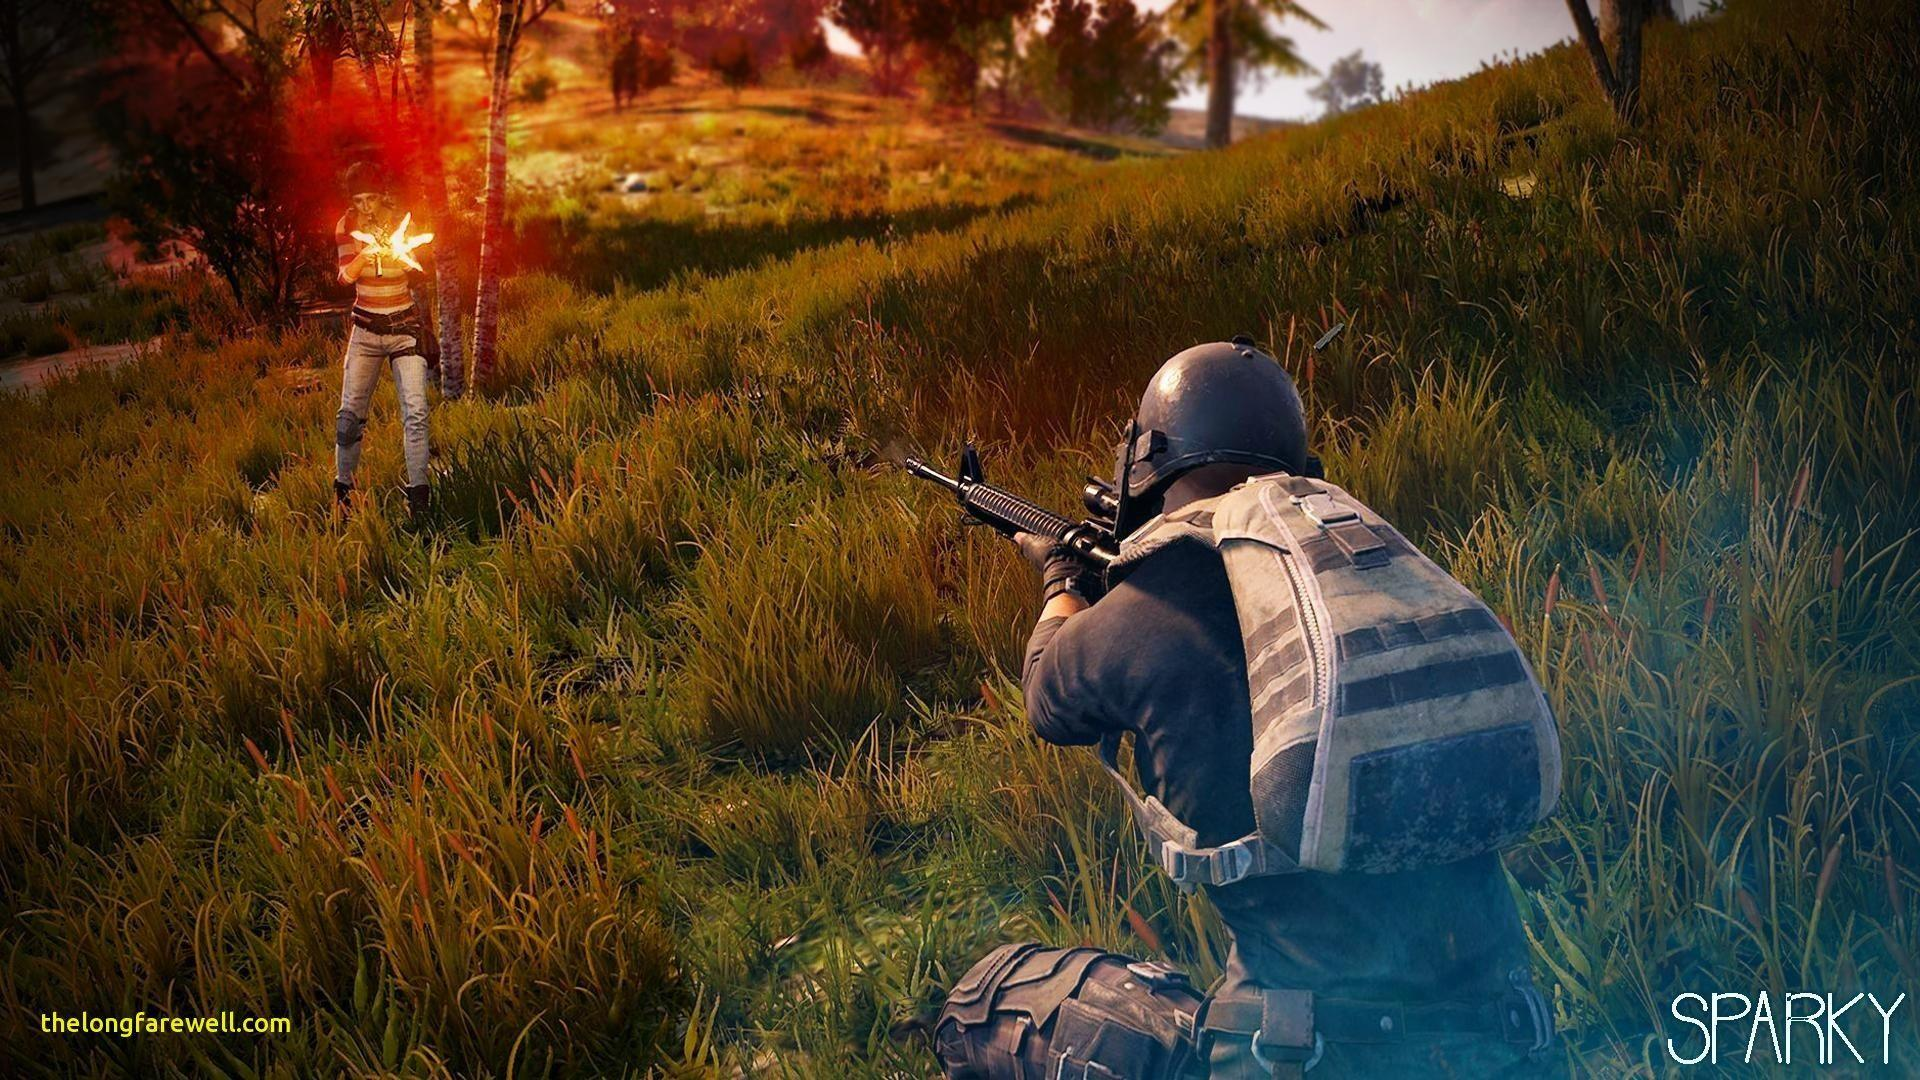 Pubg Hd Pics For Mobile: PUBG 4K Wallpapers